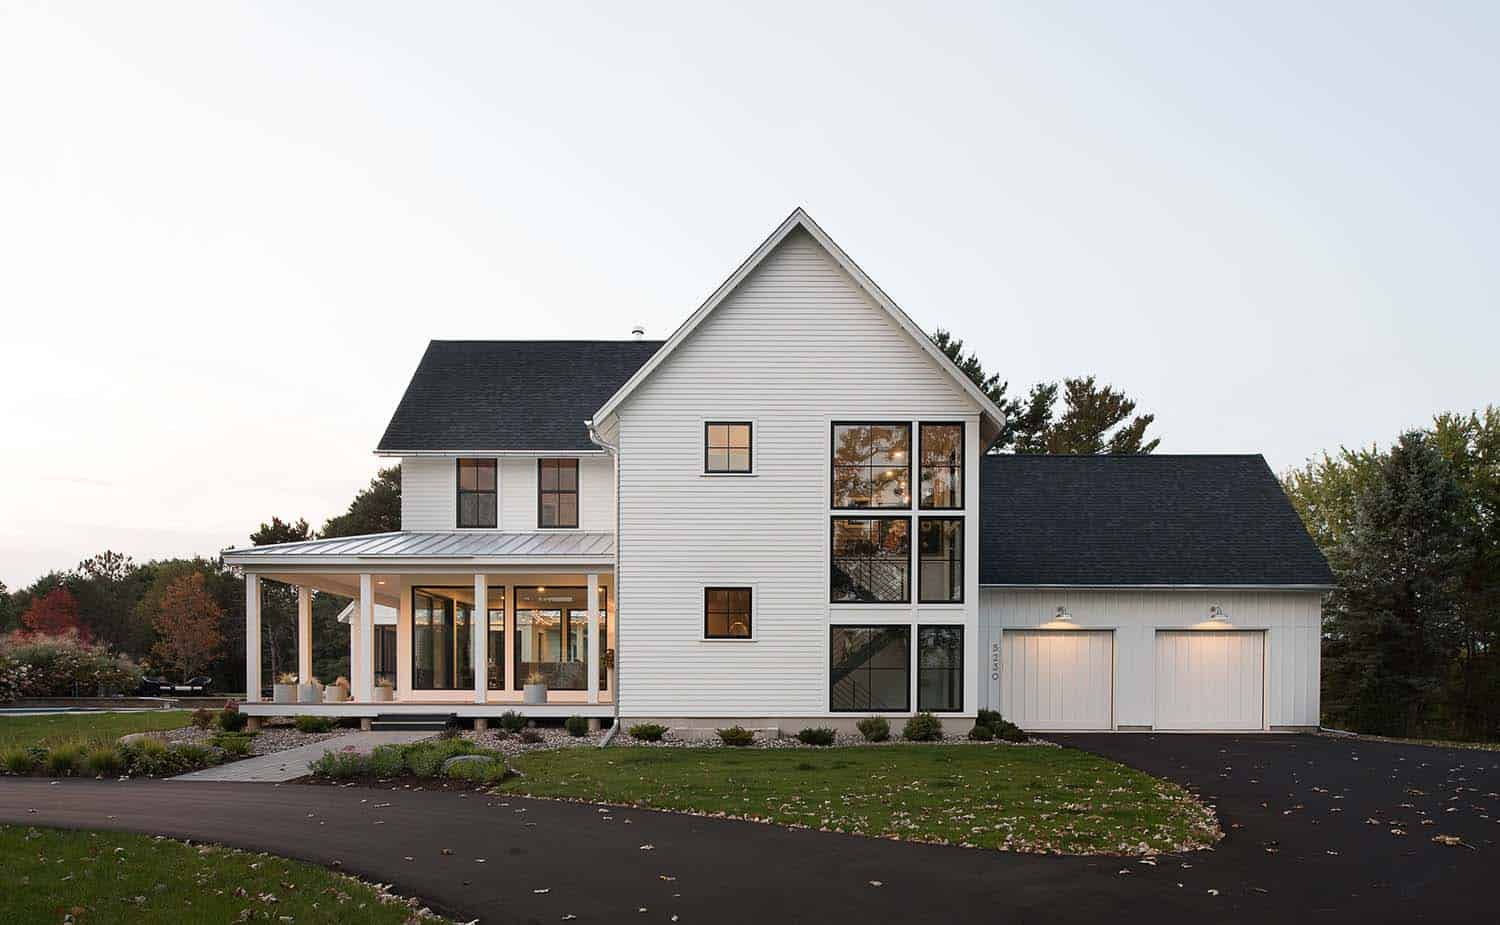 Tour a renovated modern farmhouse with exhilarating details in Minnesota